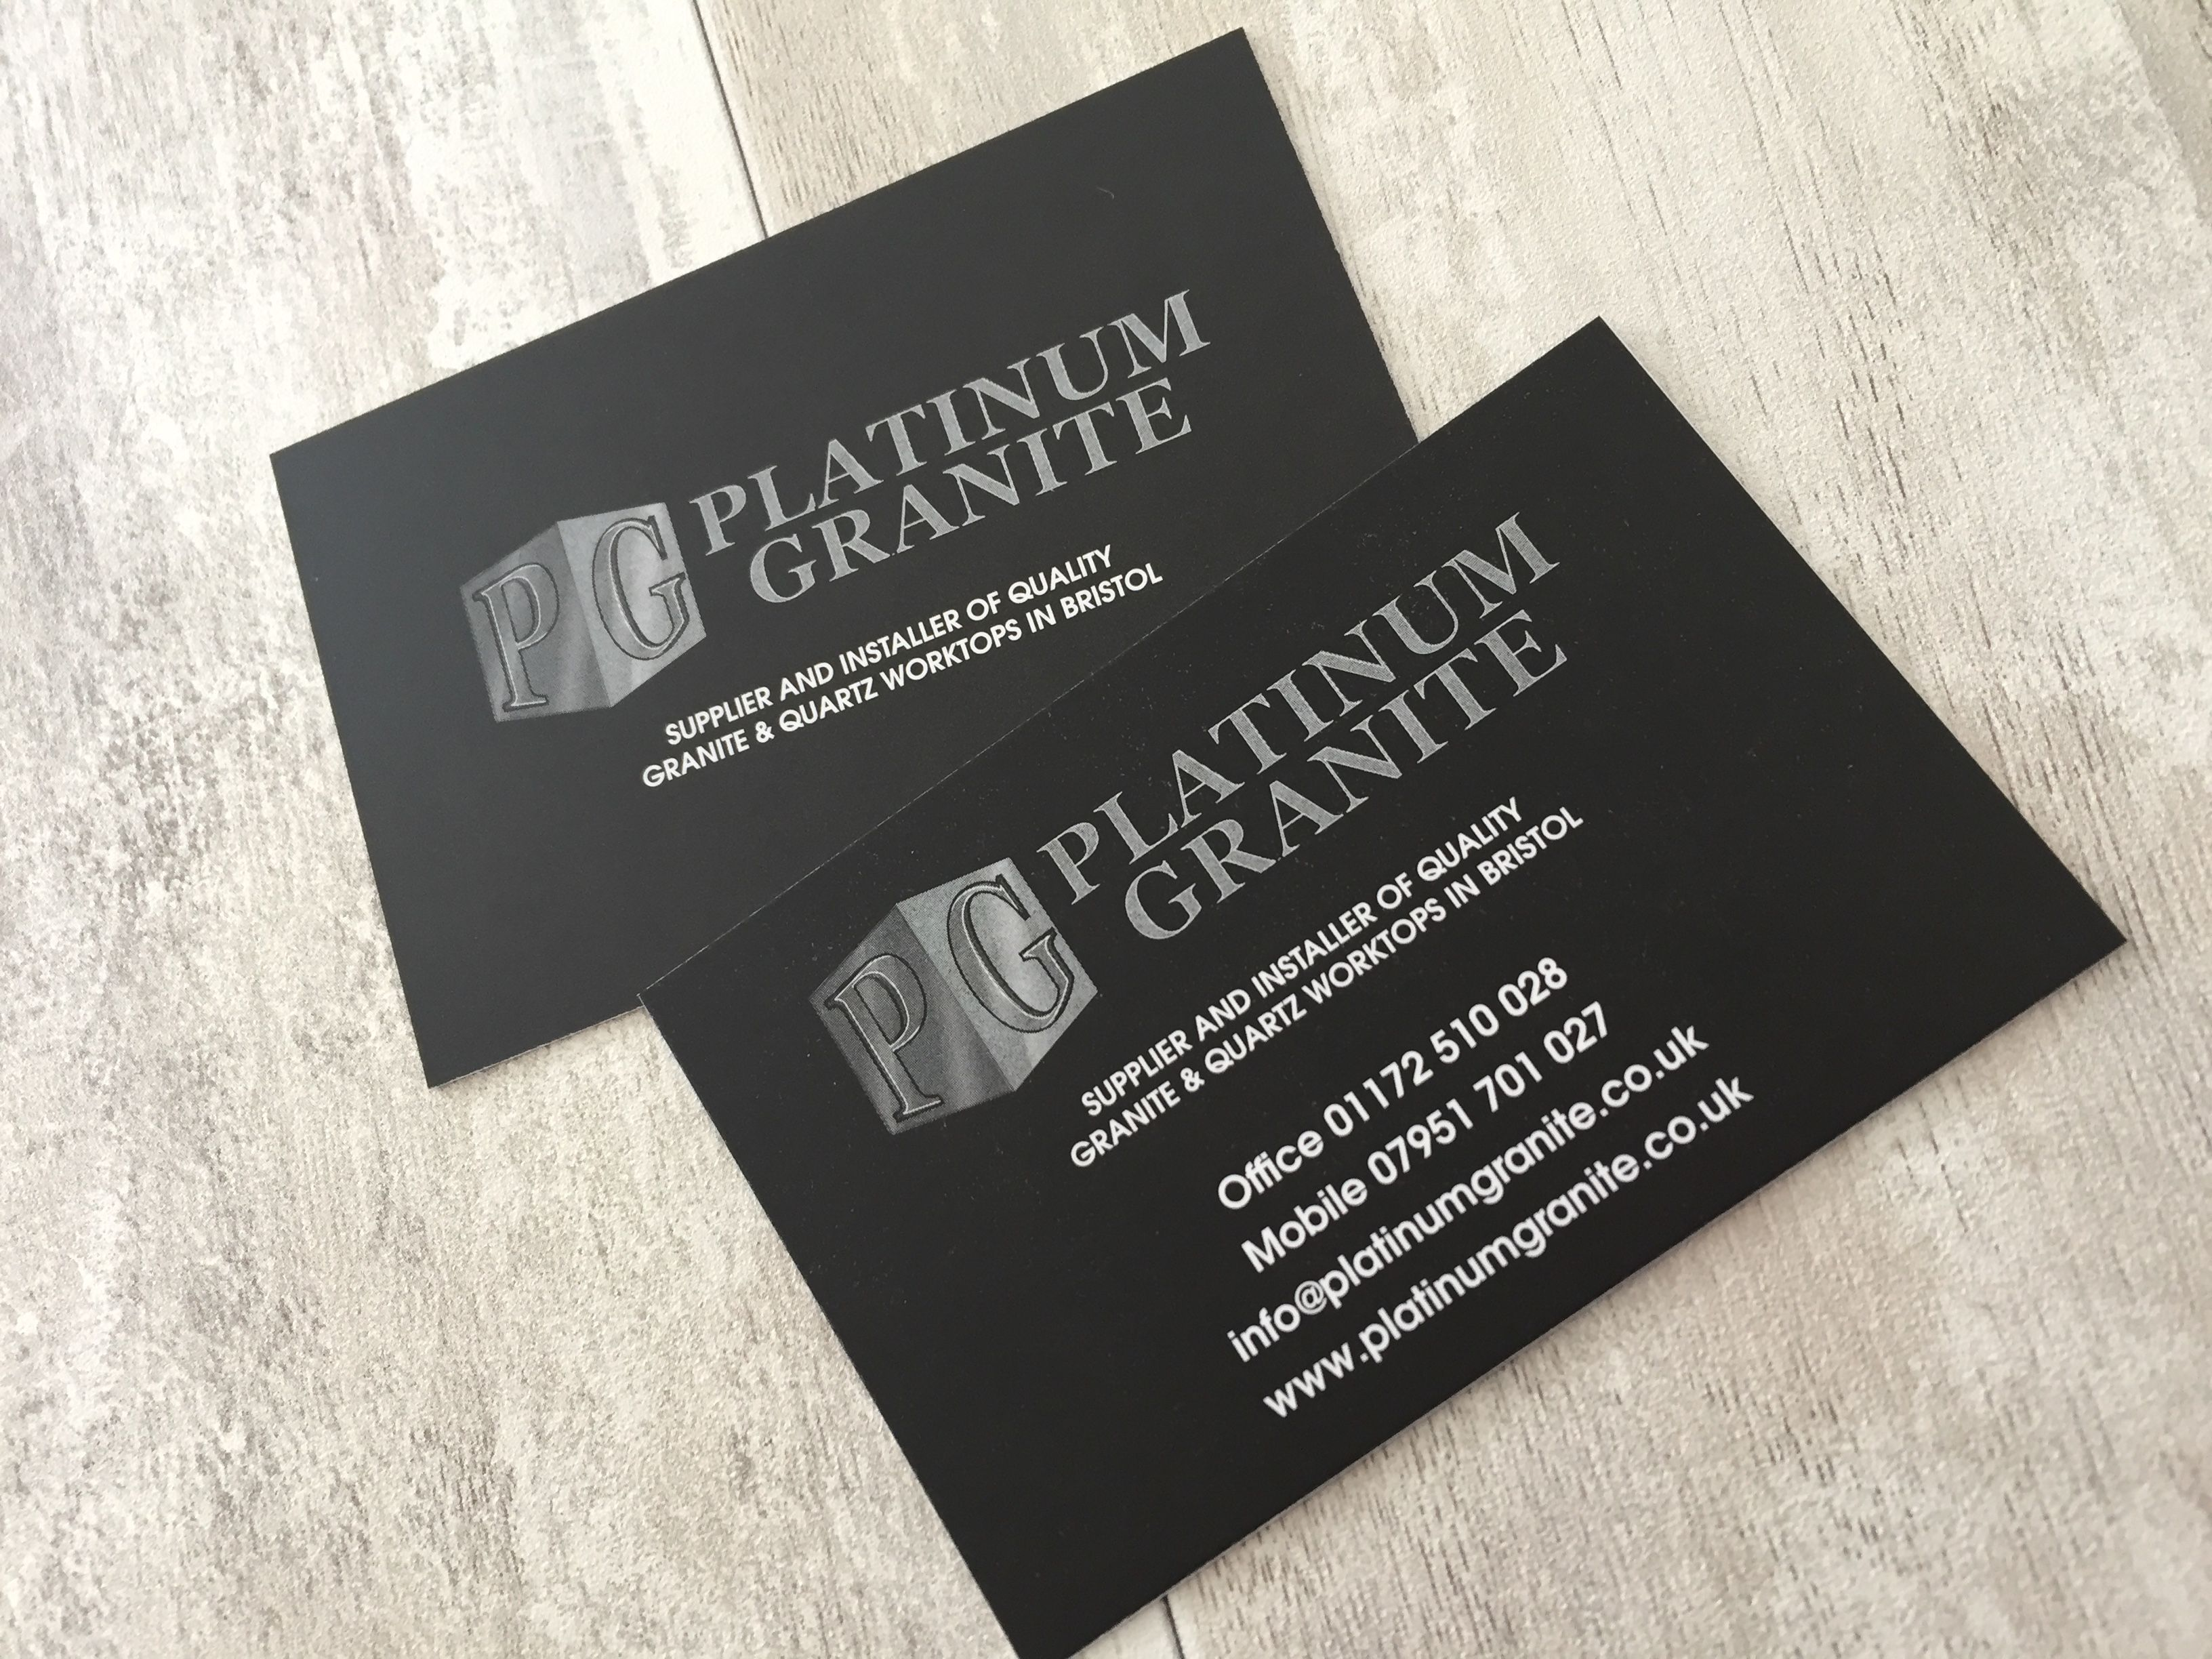 Introducing Platinum Granite We Have Been Busy Working On Their New Website Design Www Platinumgranite Co Business Card Design News Website Design Card Design